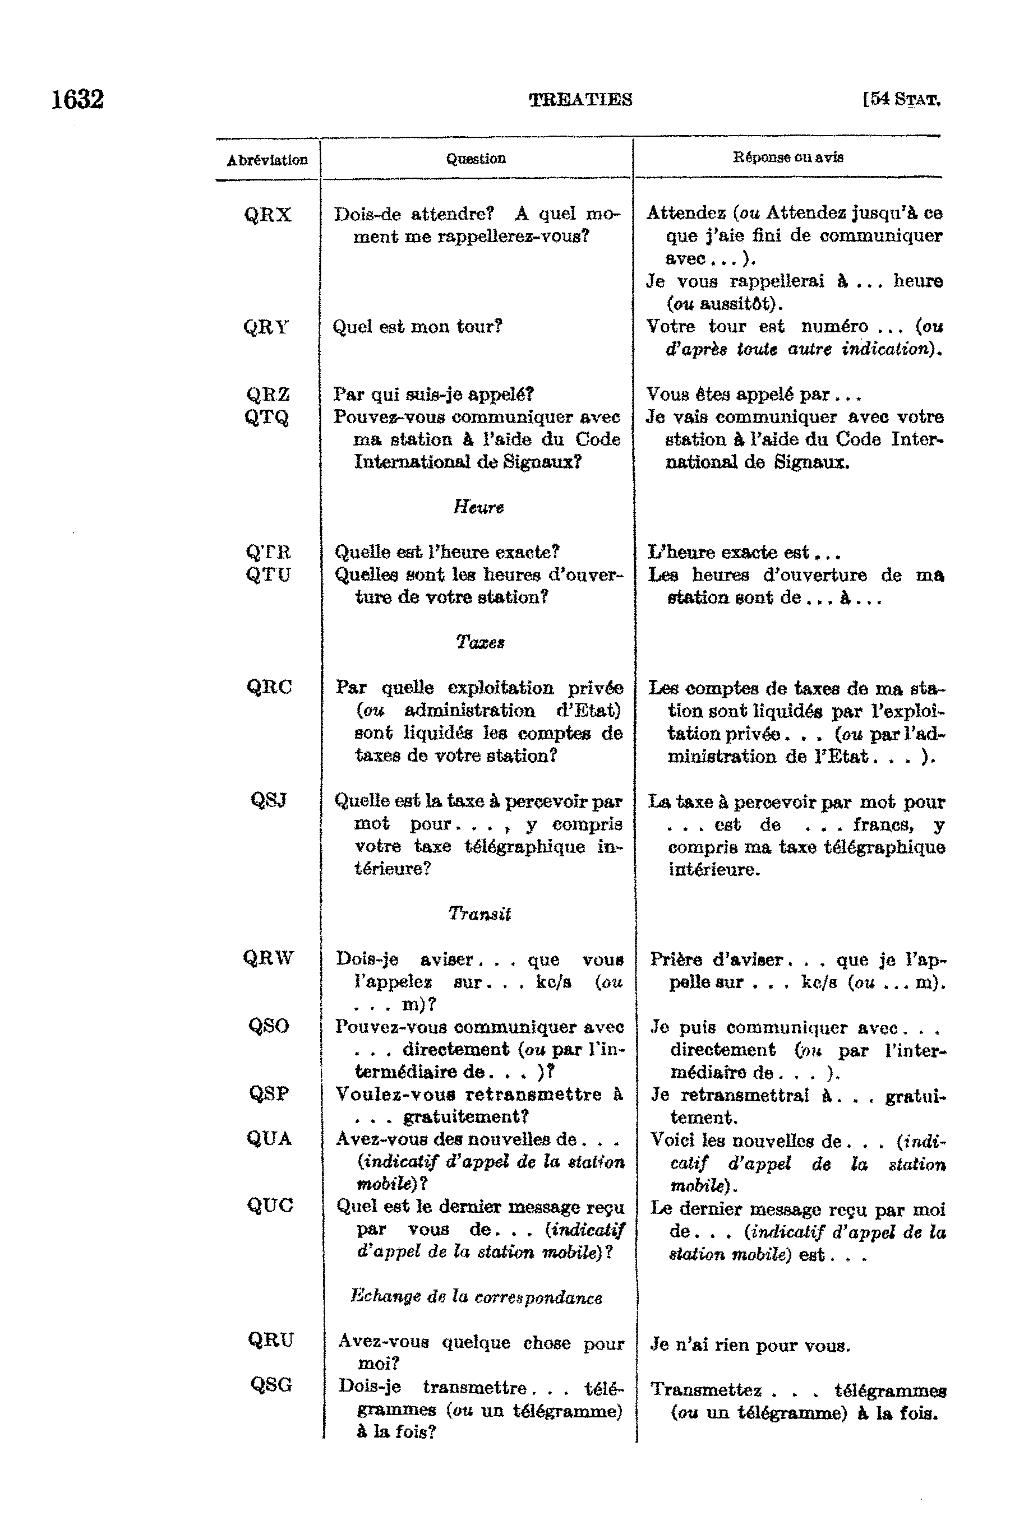 page united states statutes at large volume 54 part 2 djvu 412 wikisource the free online library